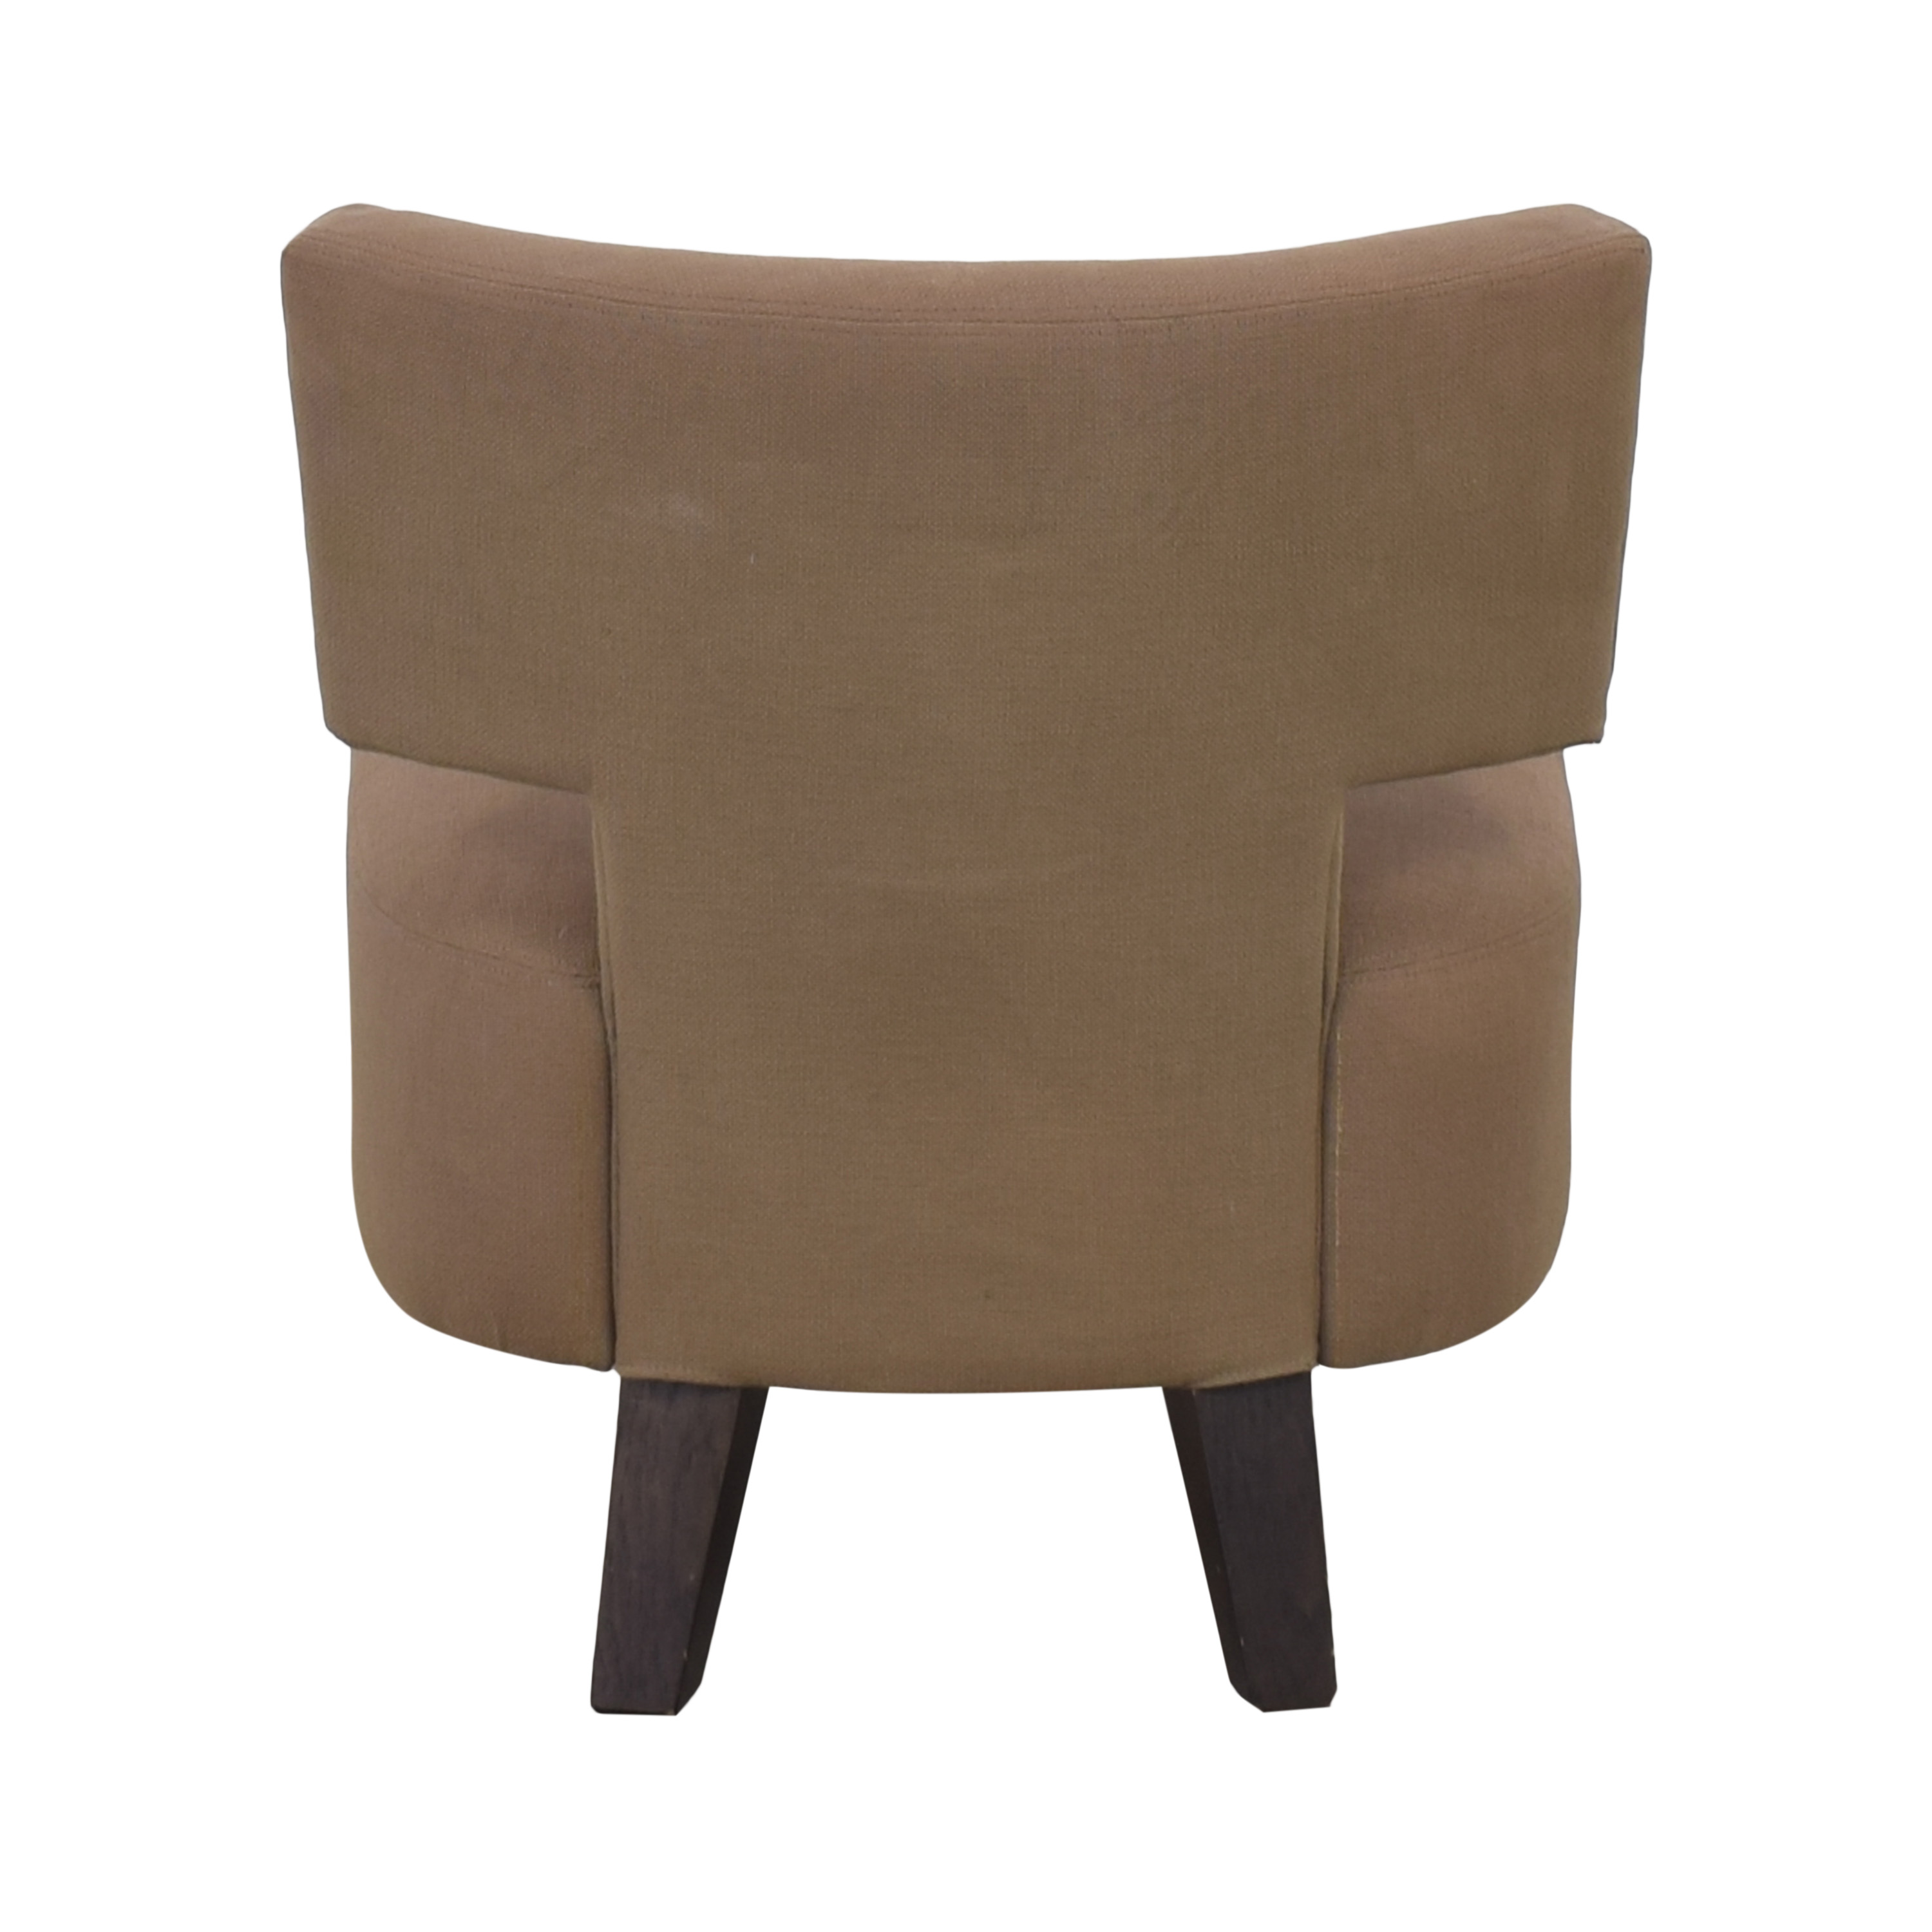 West Elm West Elm Geometric Lounge Chair dimensions